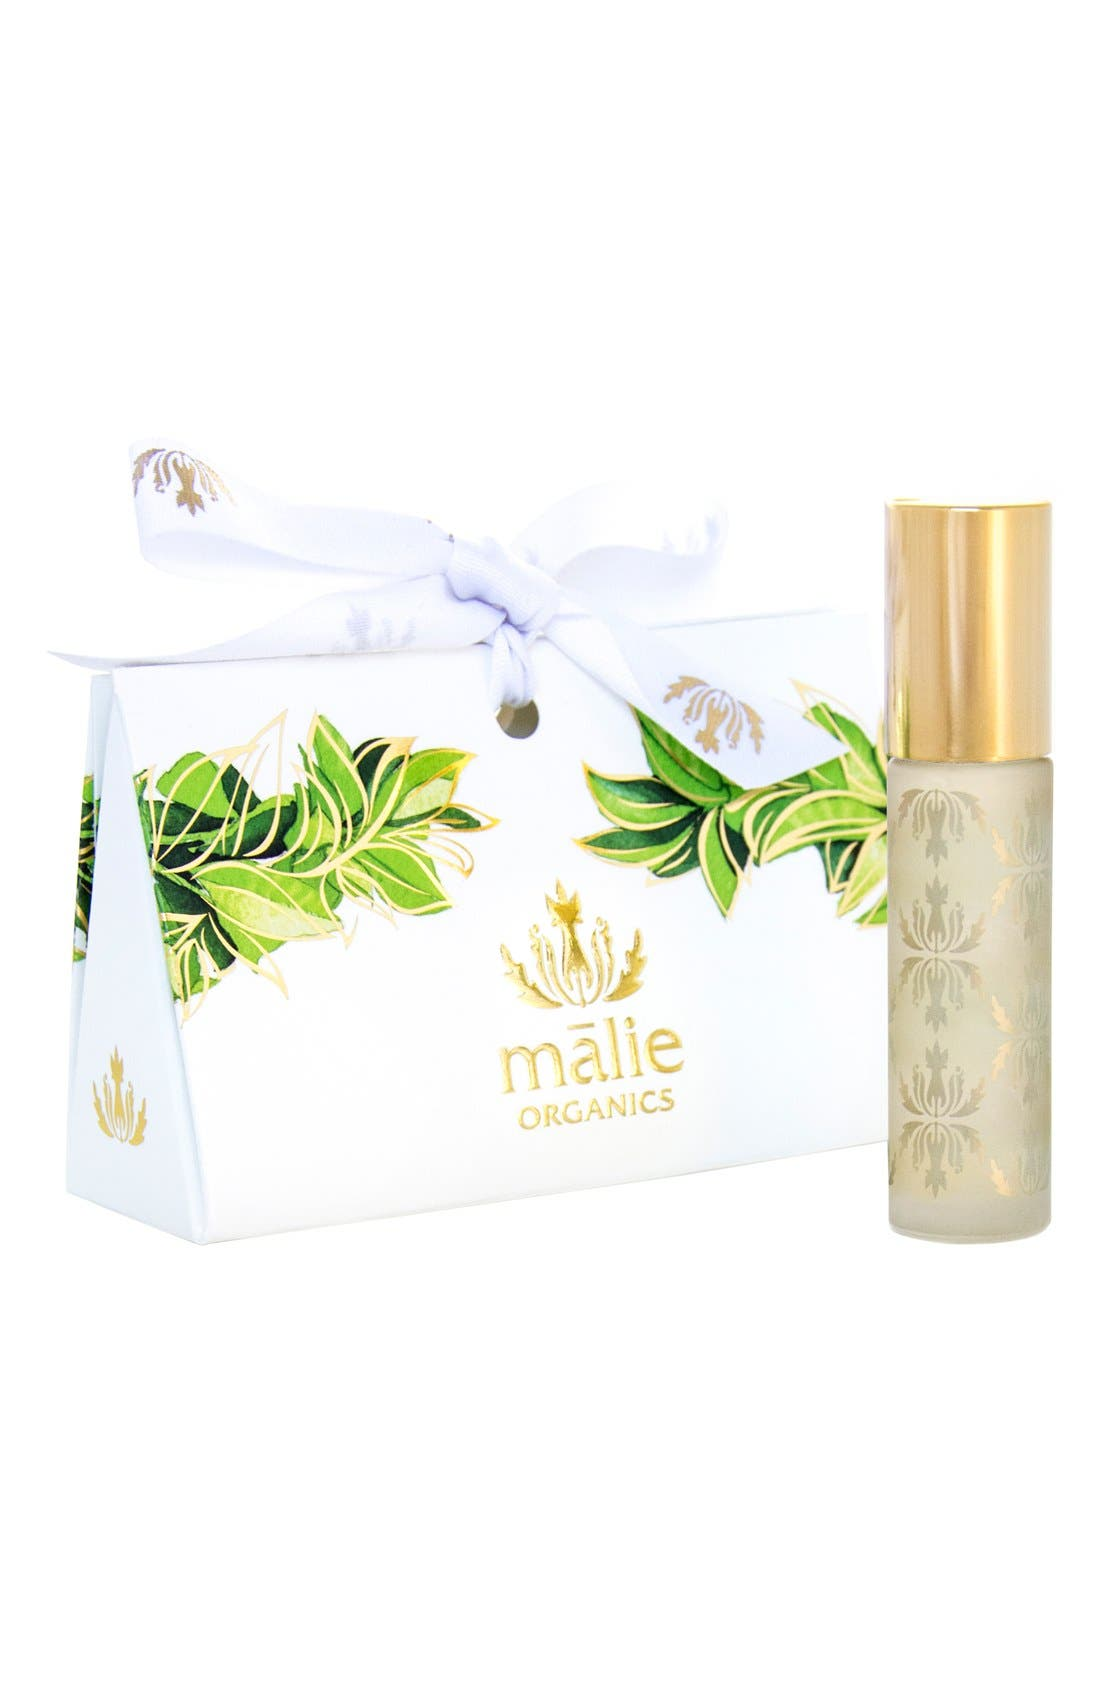 Malie Organics Koke'e Organic Roll-On Perfume Oil